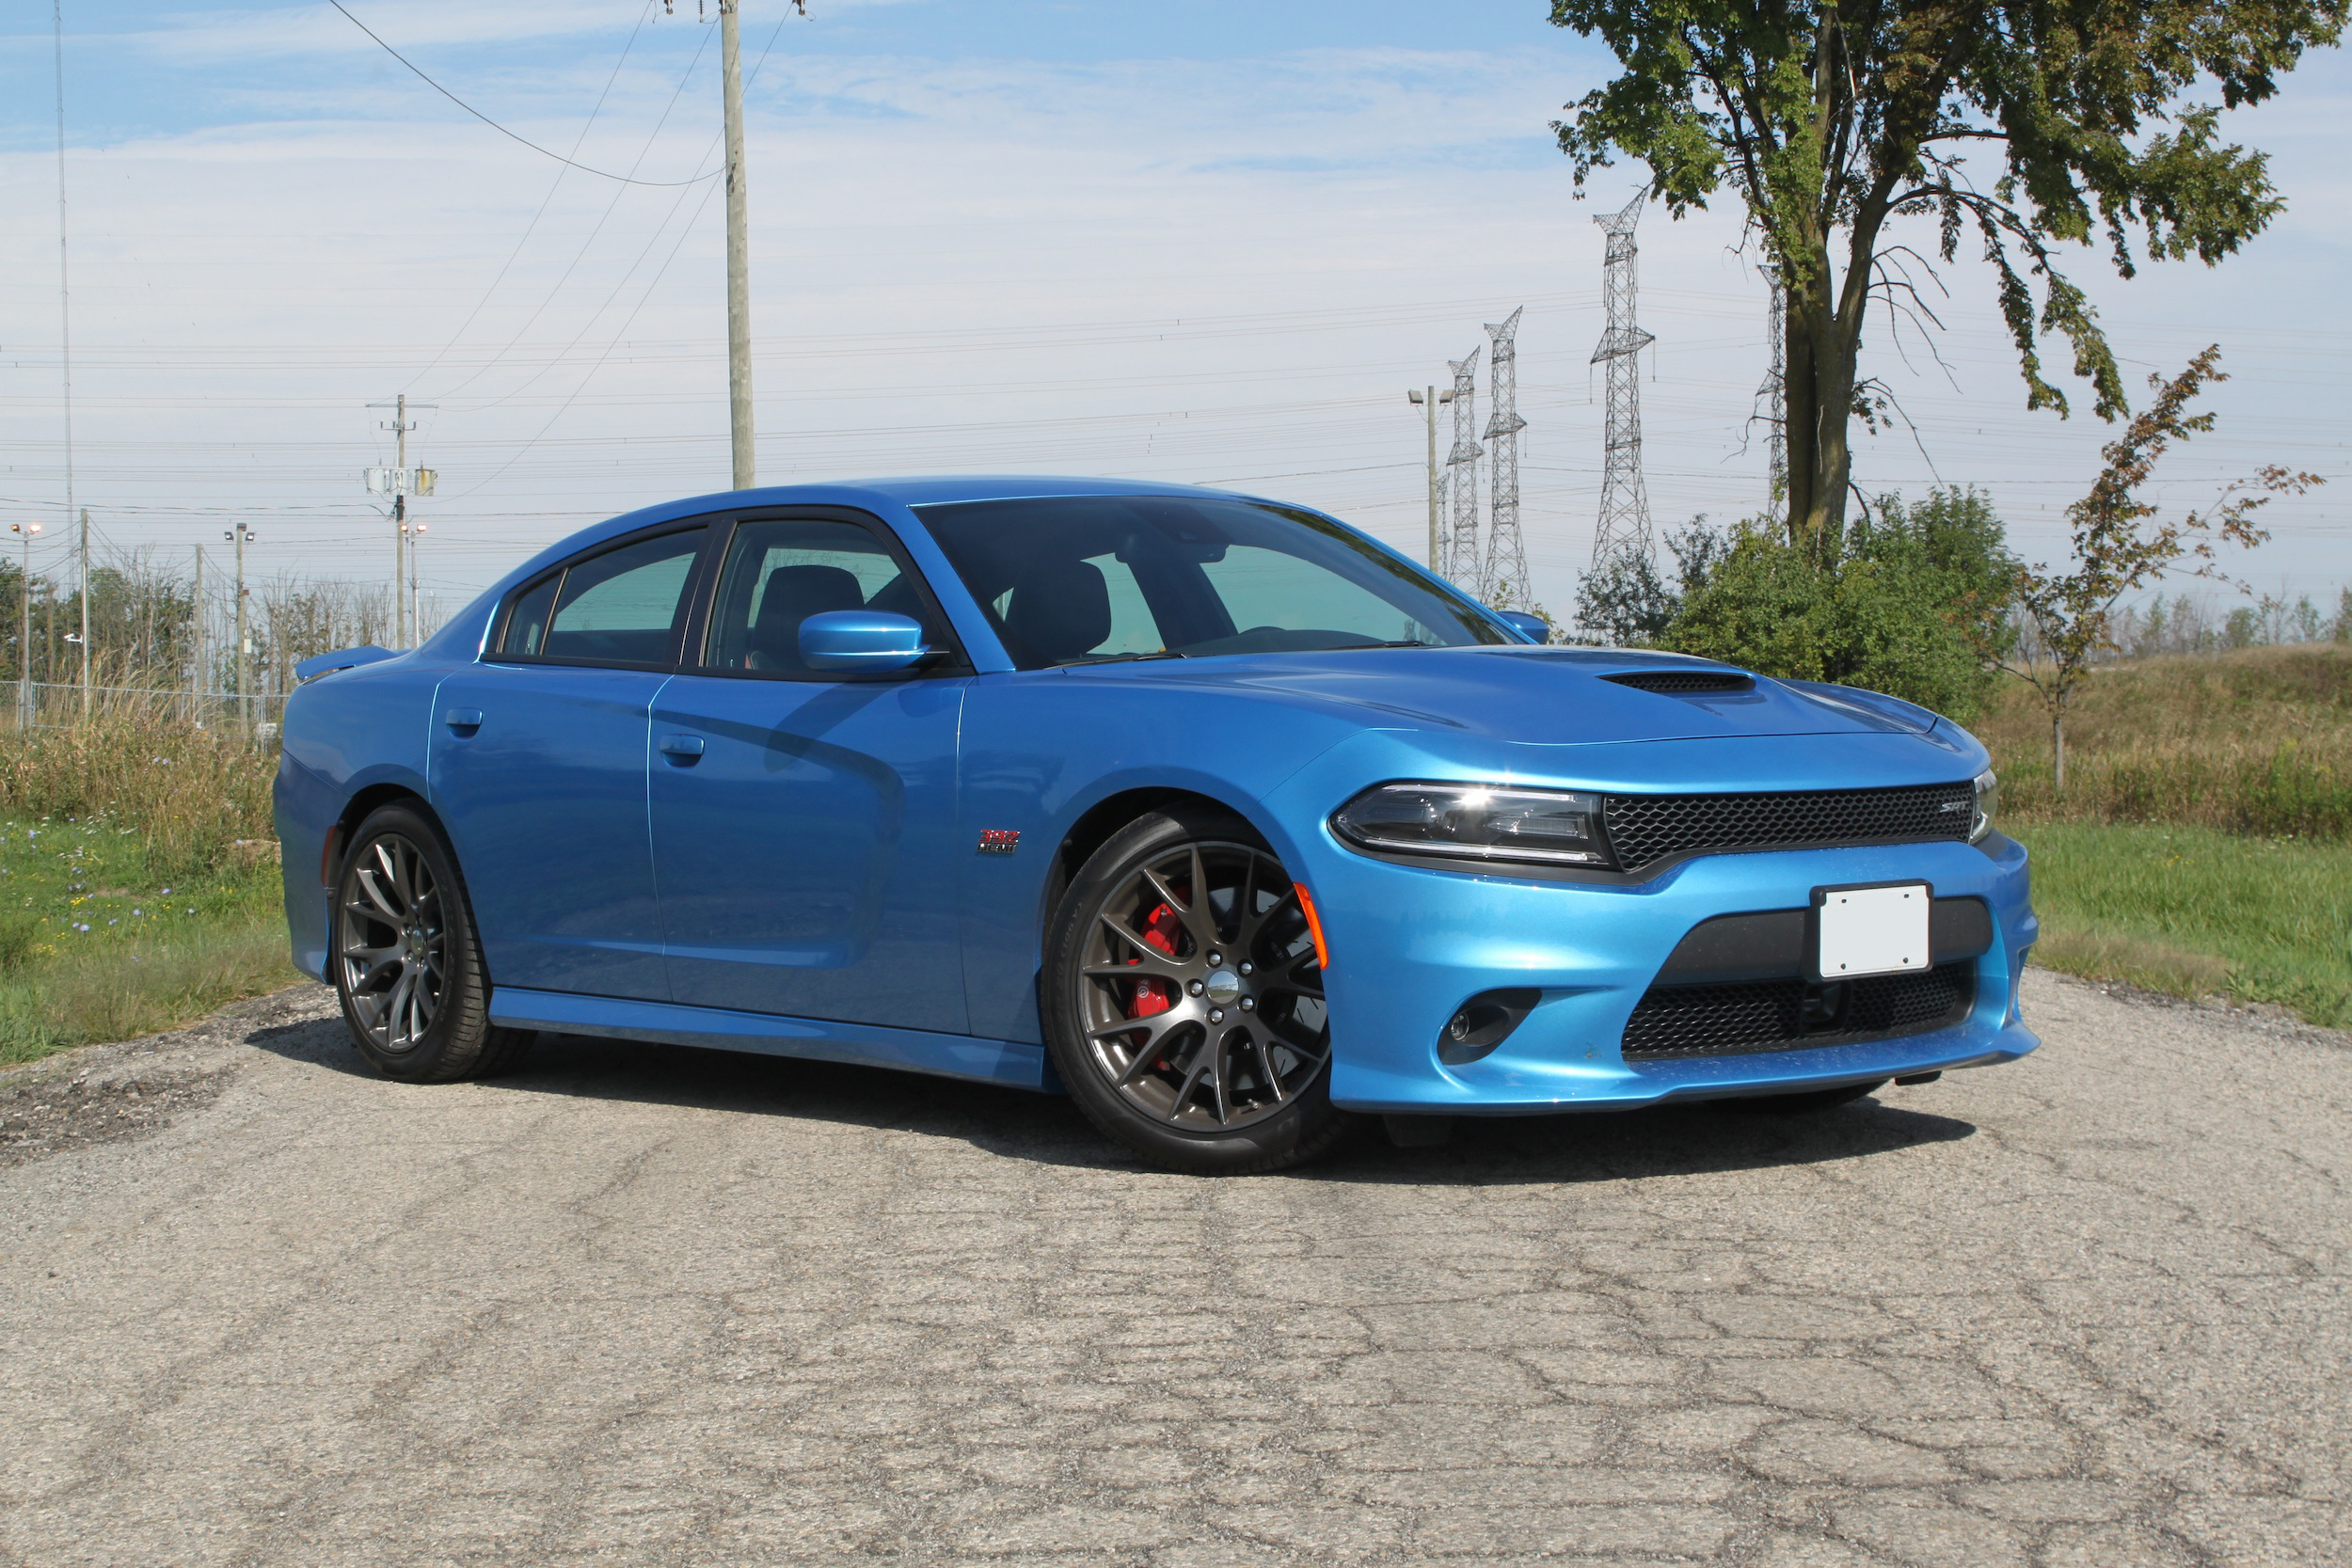 100 charger hellcat burnout 2015 dodge charger srt hellcat first look modified dodge. Black Bedroom Furniture Sets. Home Design Ideas